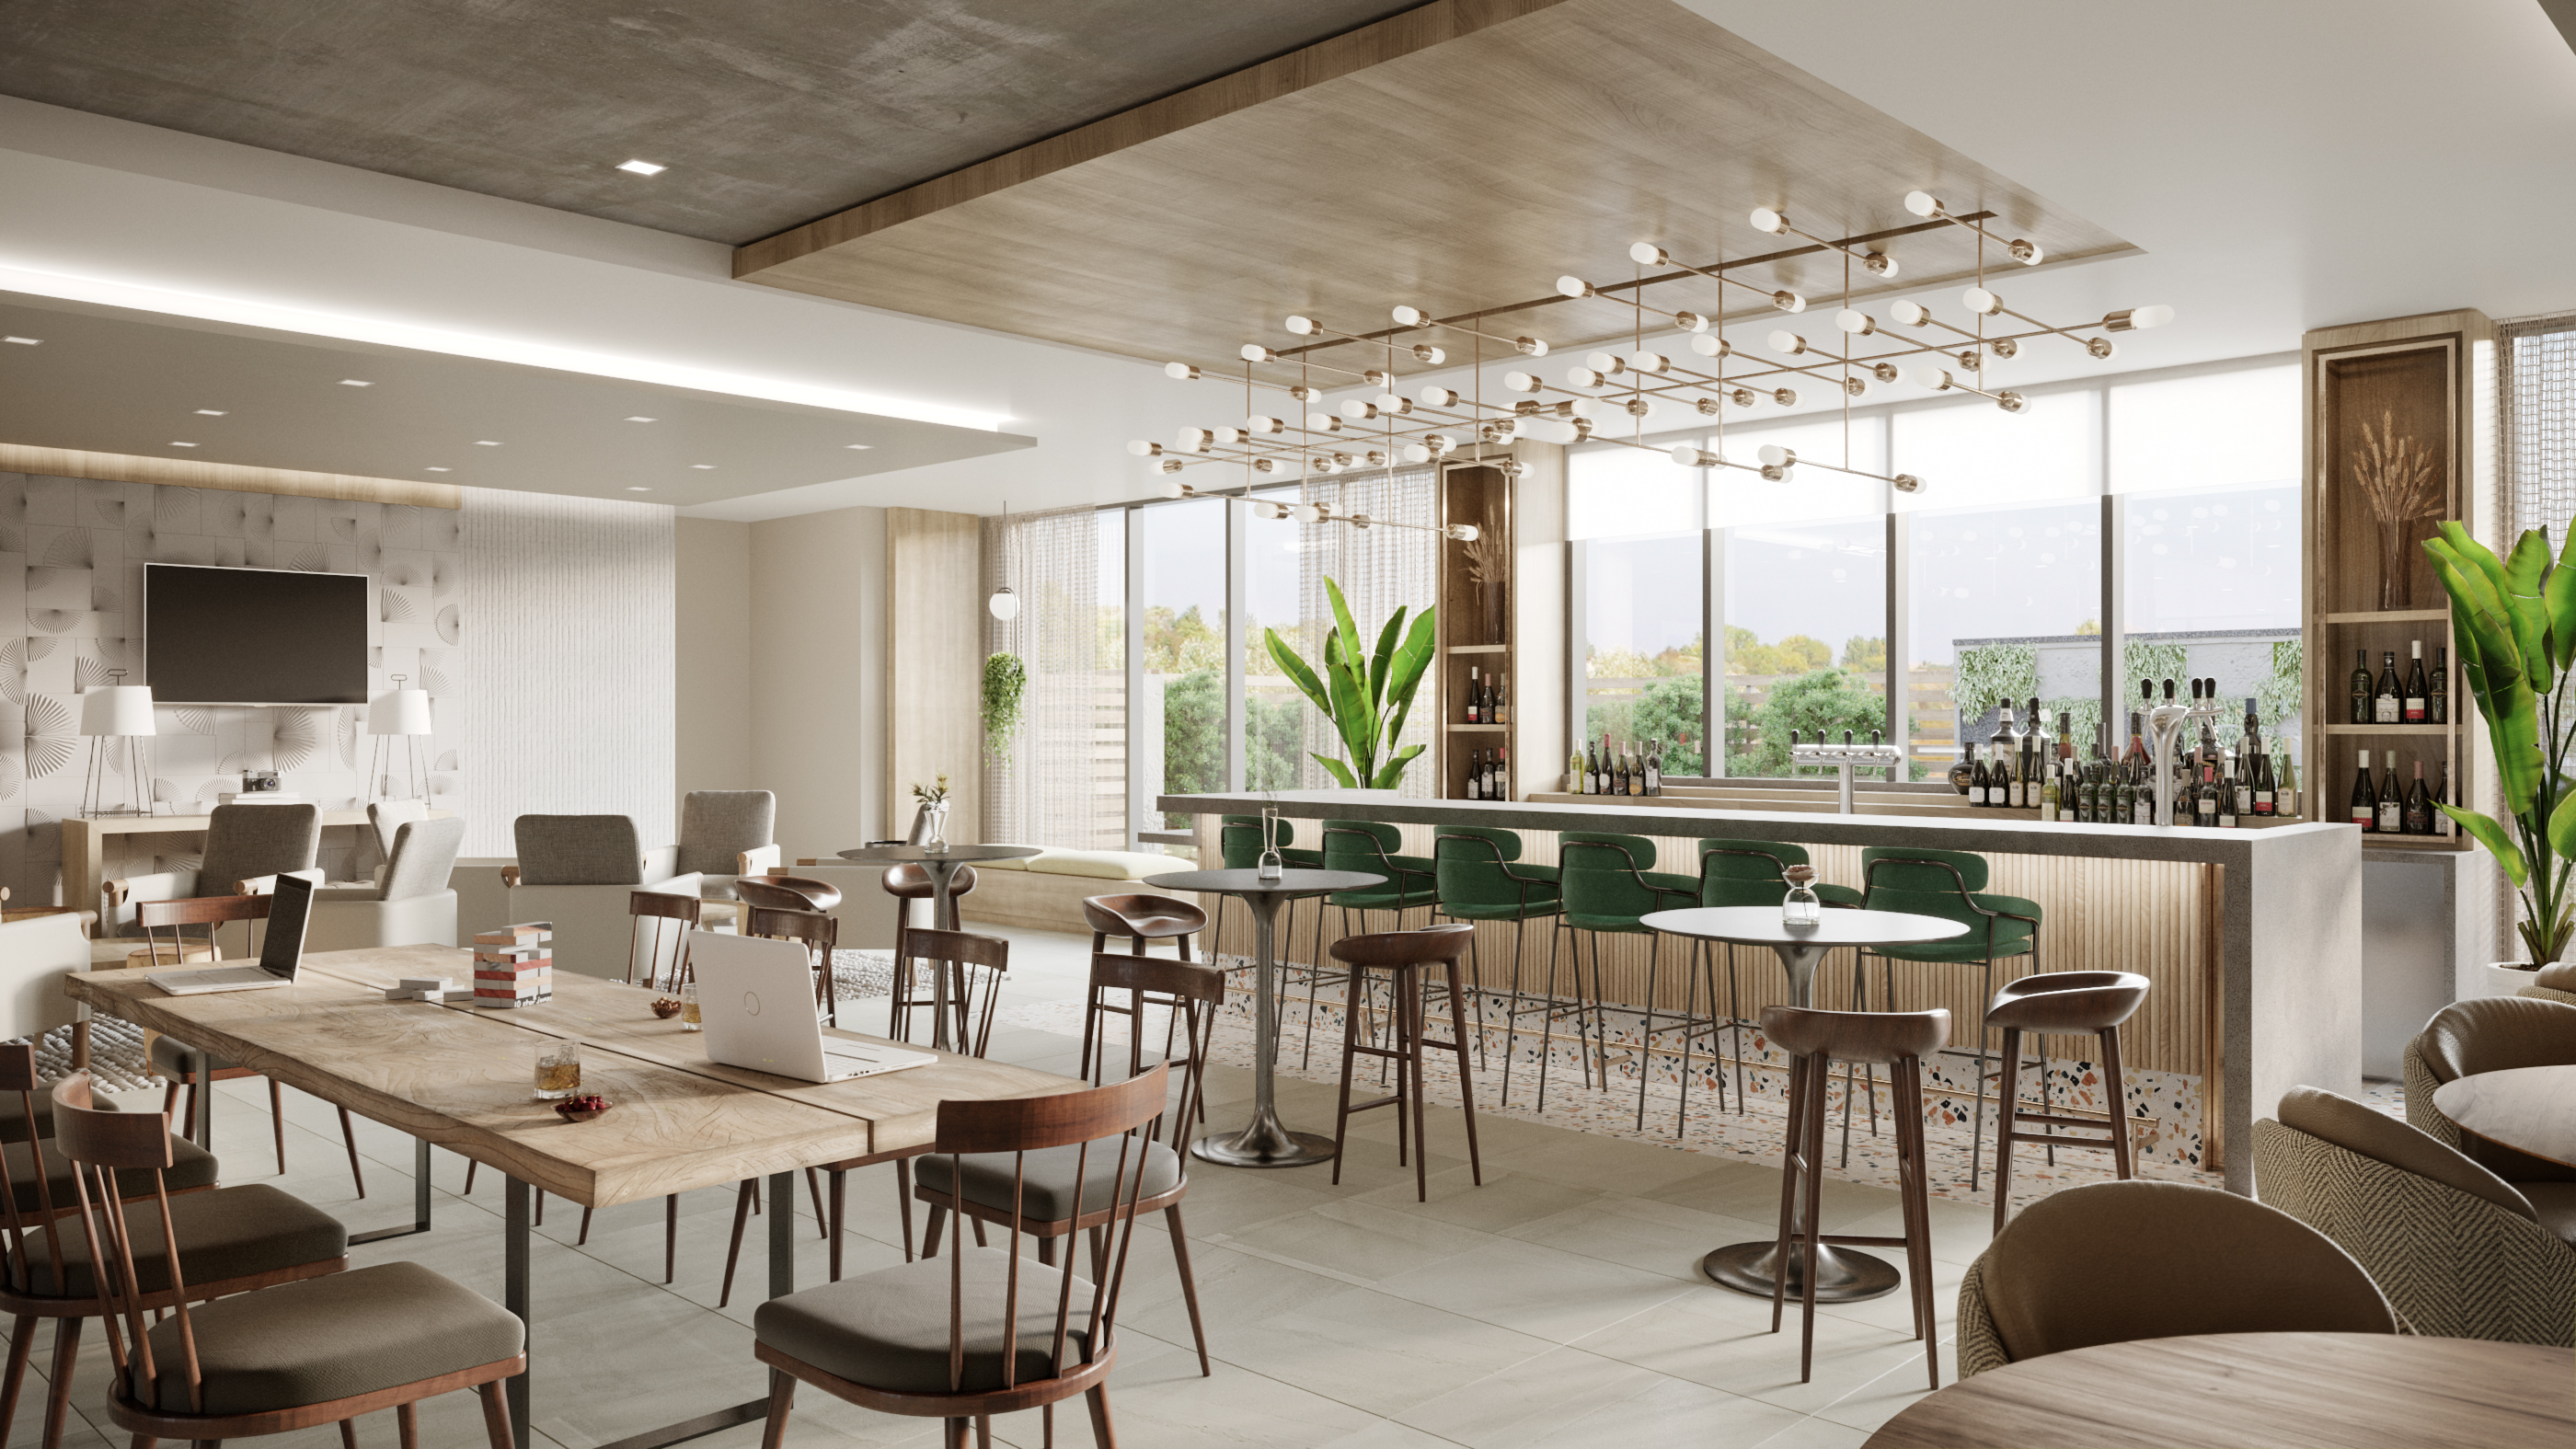 The dining concept relies on a few ingredients to keep costs low.